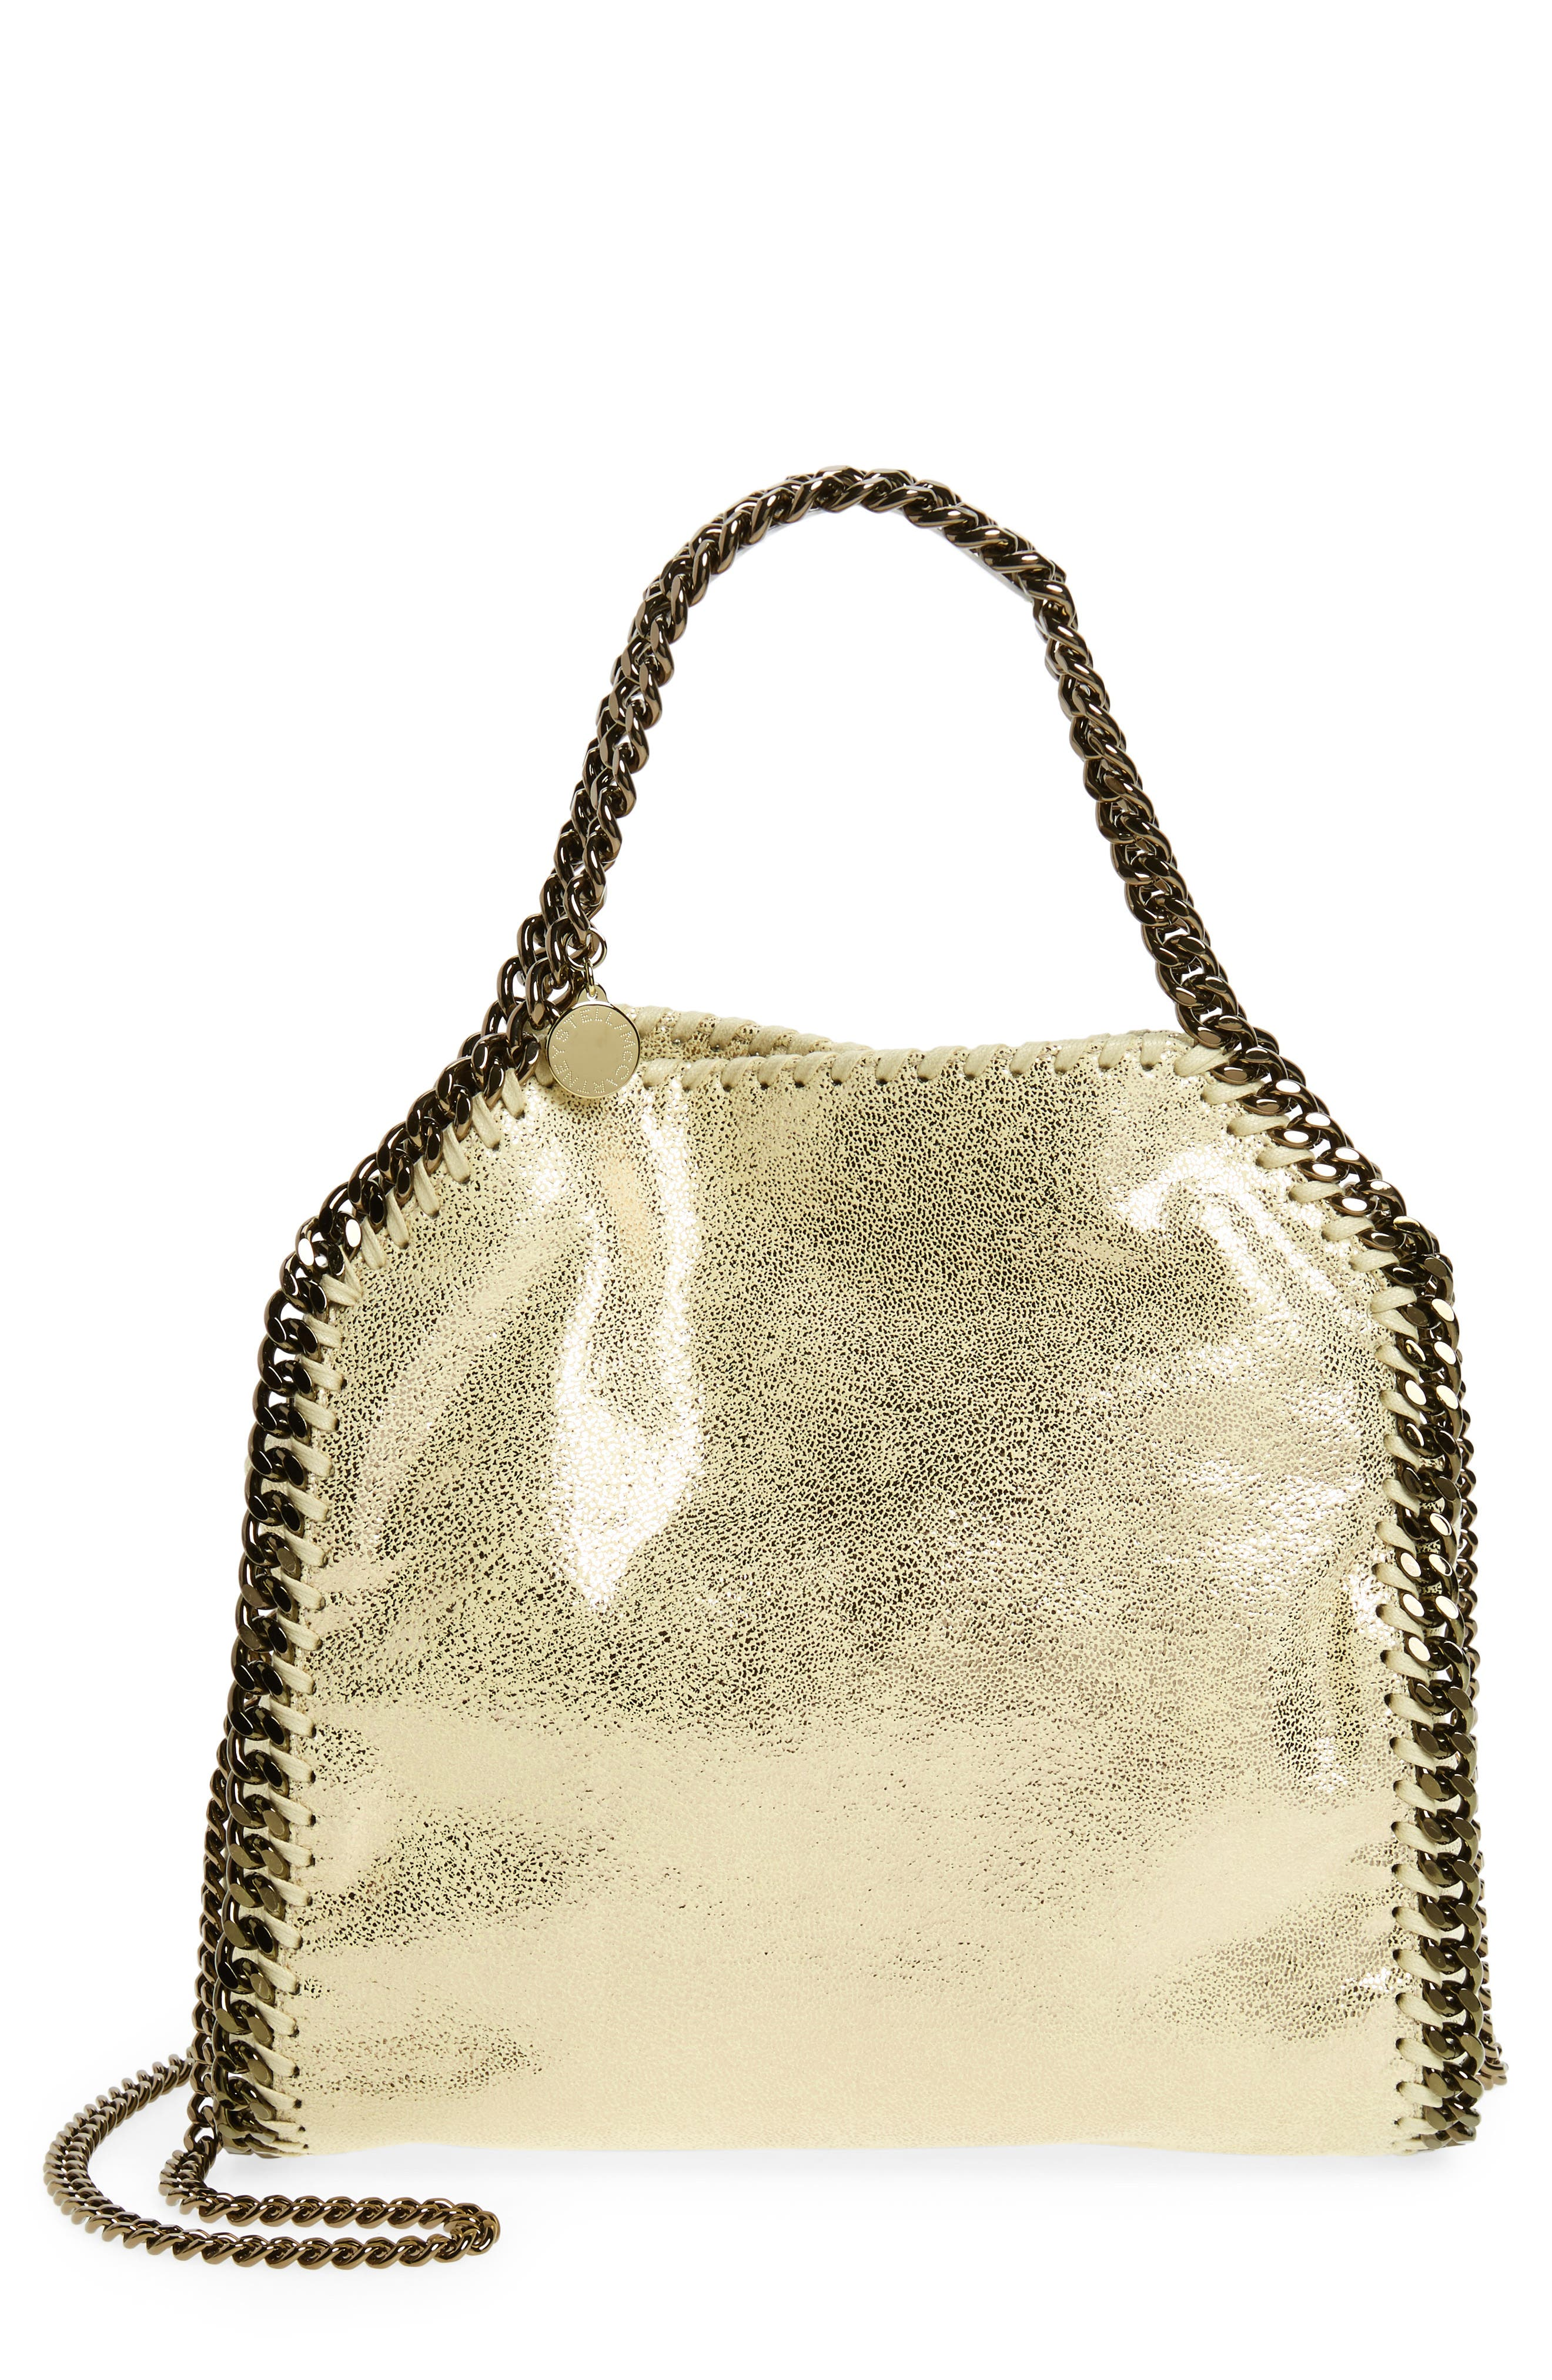 Main Image - Stella McCartney Mini Falabella Shaggy Deer Metallic Faux Leather Tote